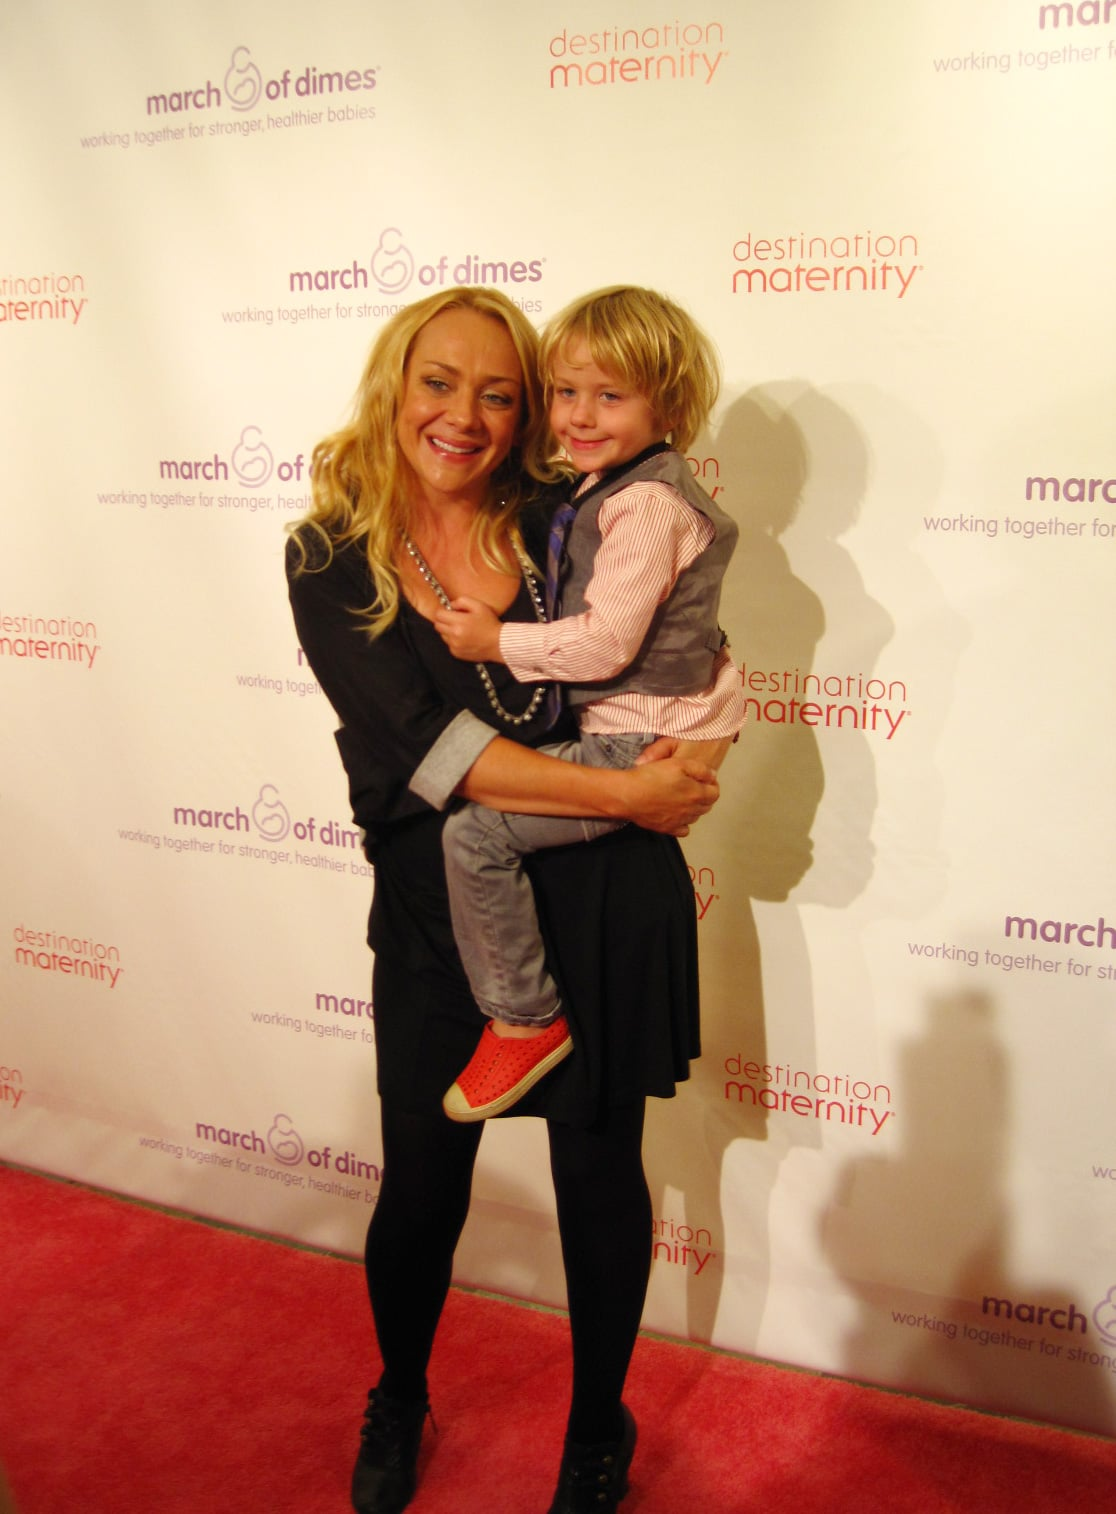 Comedian and mom of two Nicole Sullivan made a surprise appearance at Destination Maternity's FNO event — with her eldest son, Dashel Pierce, by her side.<br /> Source: Nicole Abbott